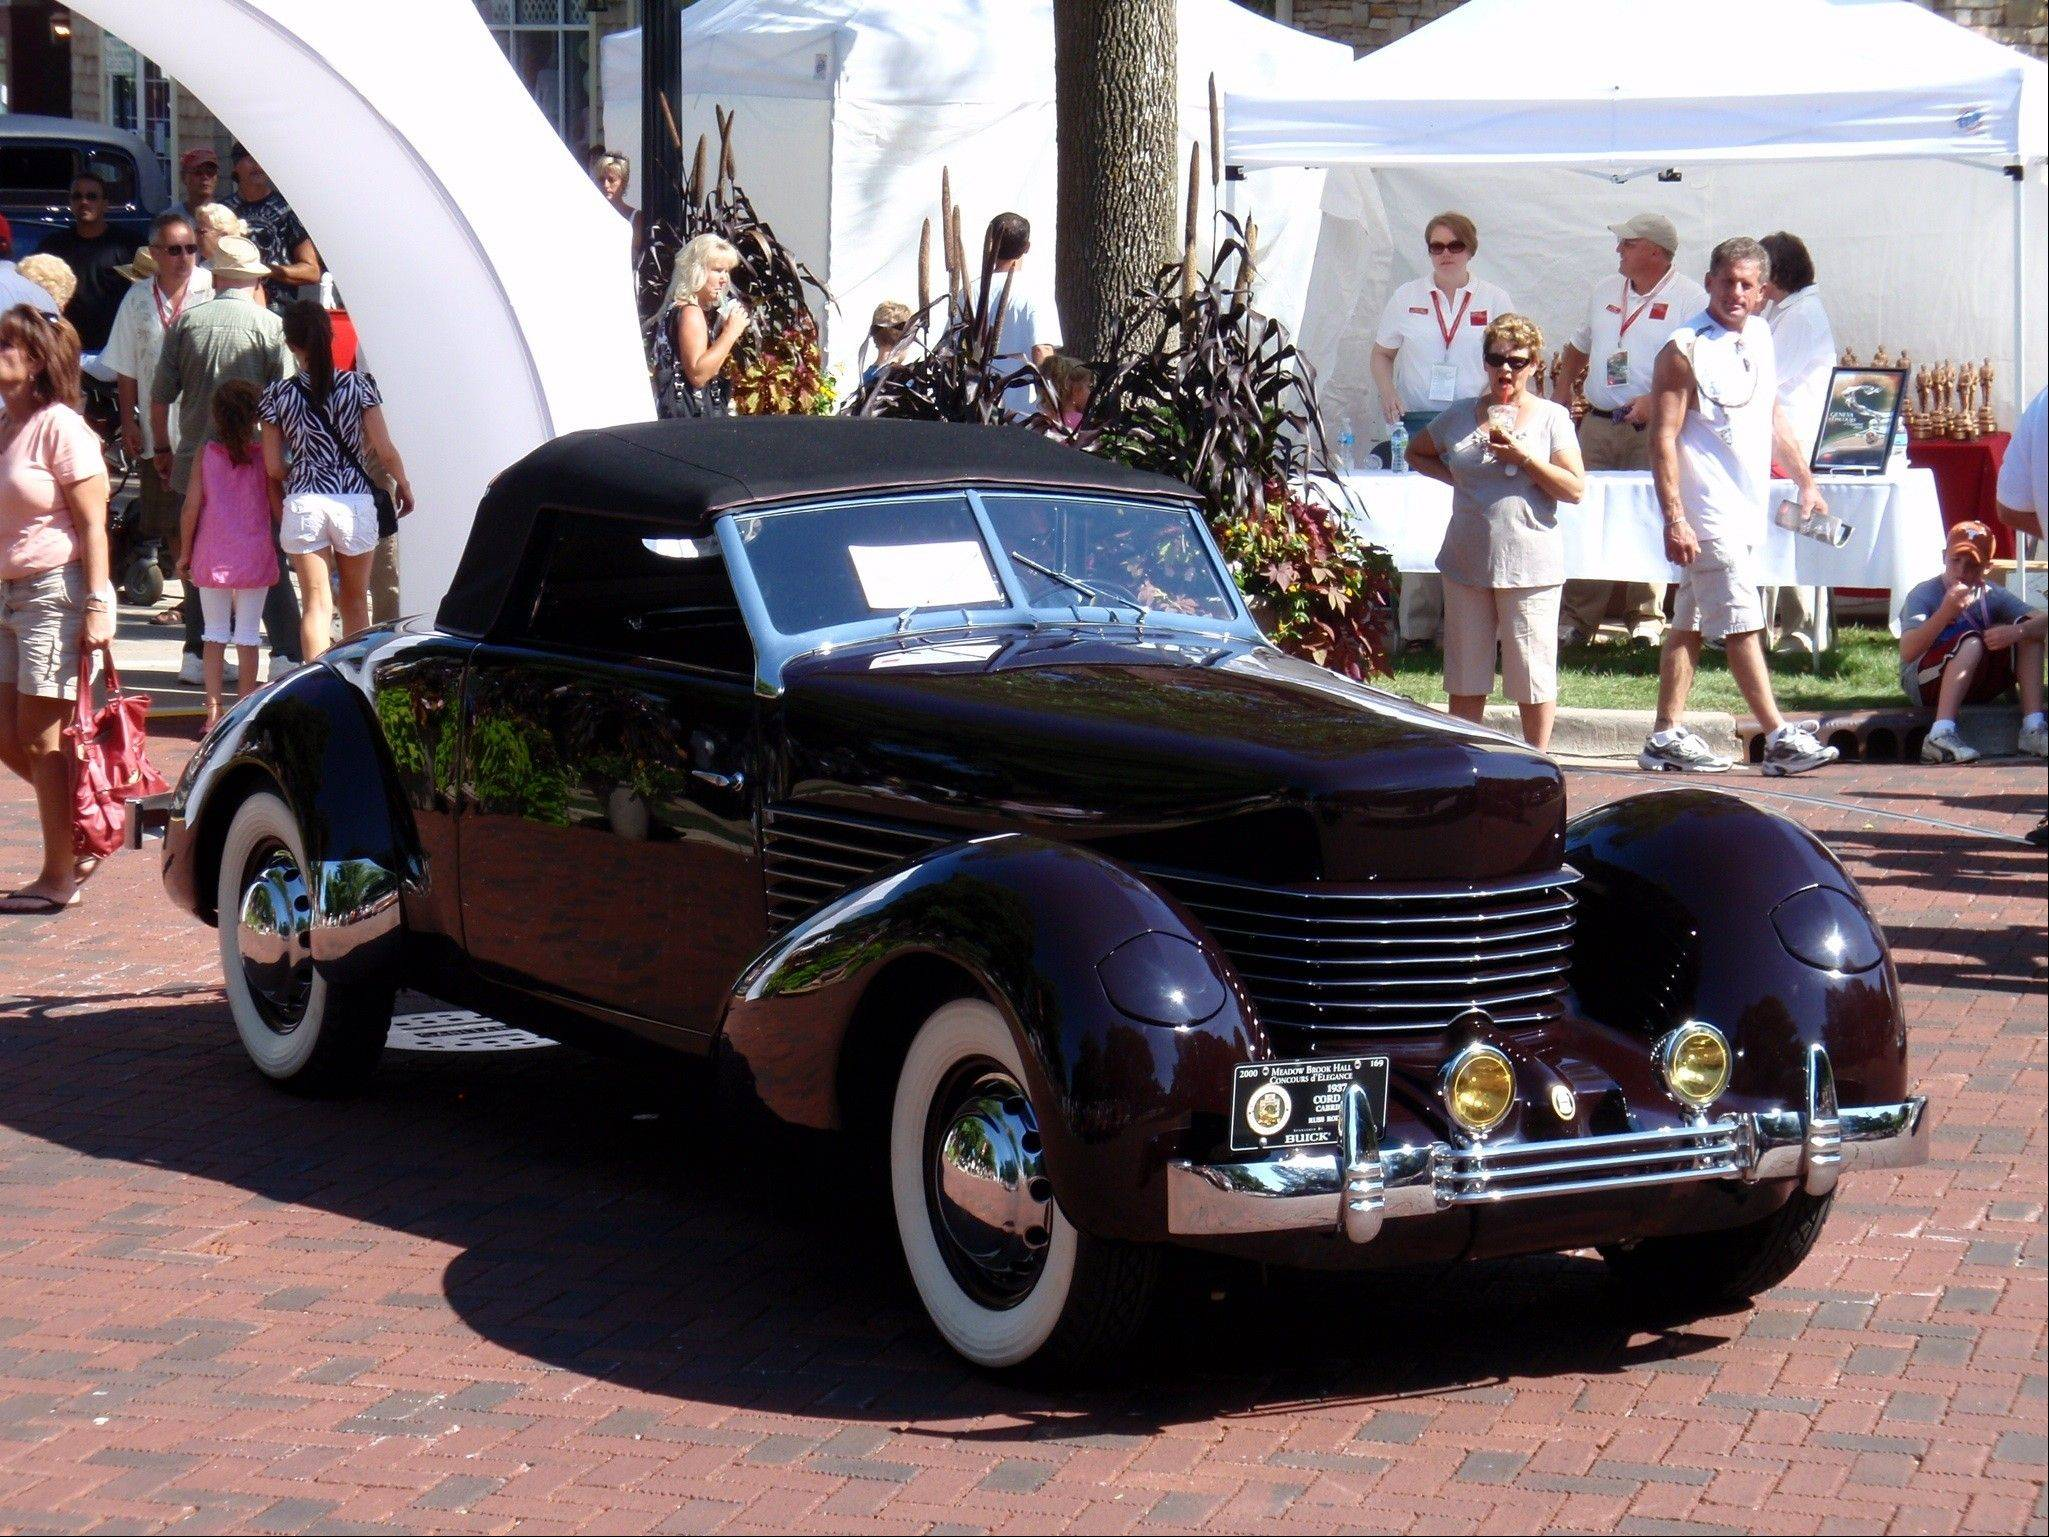 Russ Rodriguez will showcase his 1937 Cord Cabriolet at the Father's Day Classic Car Show at Oakbrook Center. The car, he says, was meant to be driven.